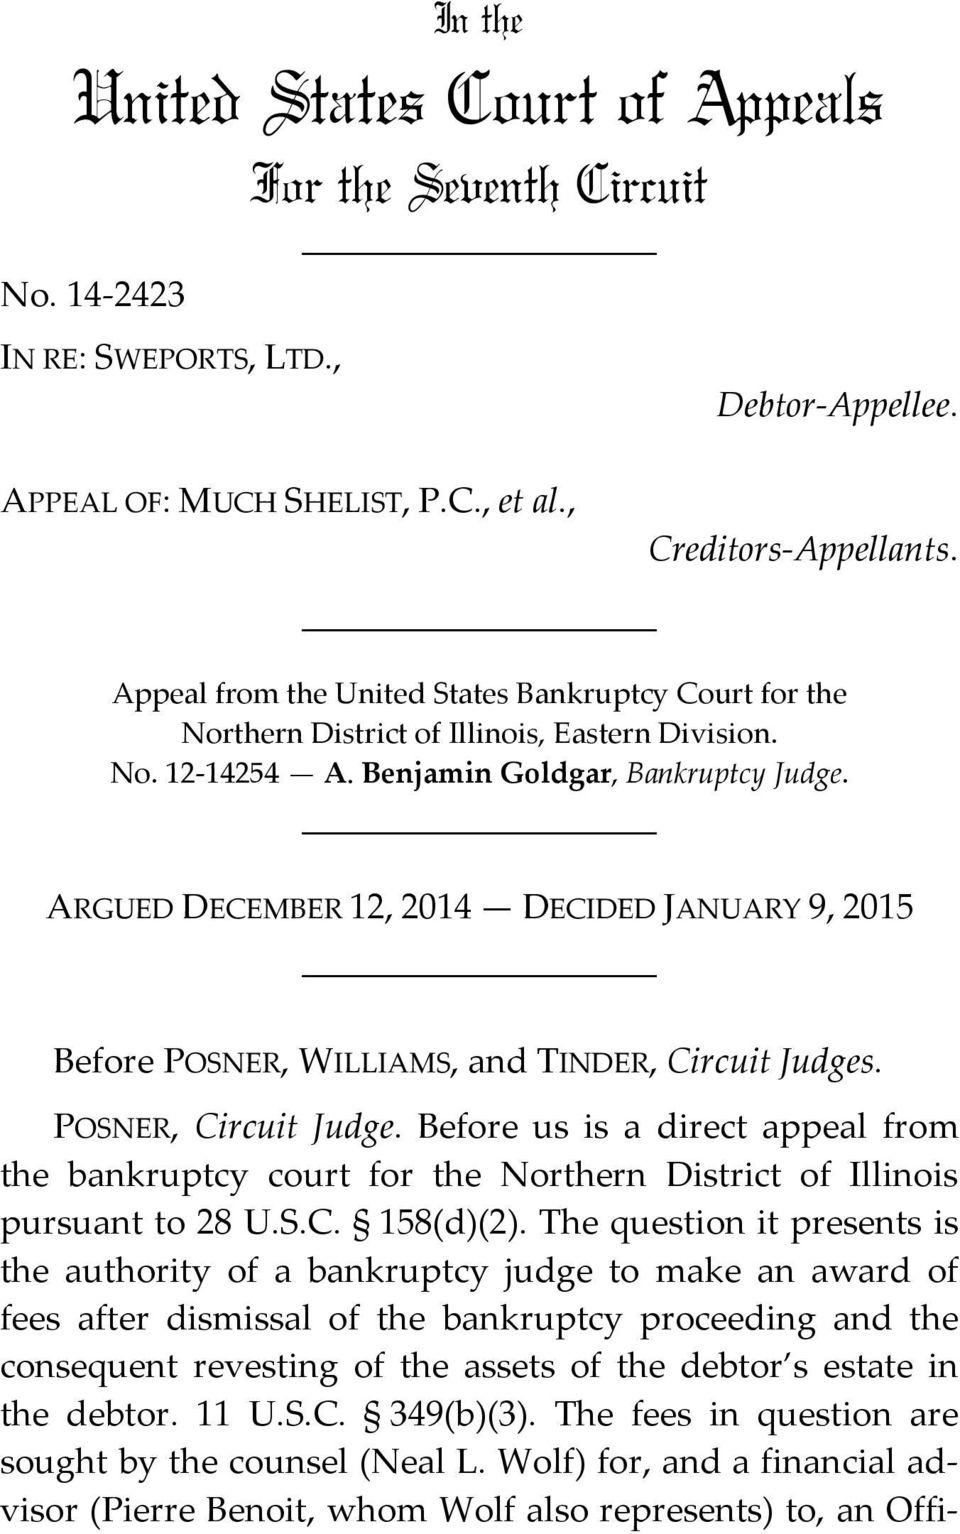 ARGUED DECEMBER 12, 2014 DECIDED JANUARY 9, 2015 Before POSNER, WILLIAMS, and TINDER, Circuit Judges. POSNER, Circuit Judge.